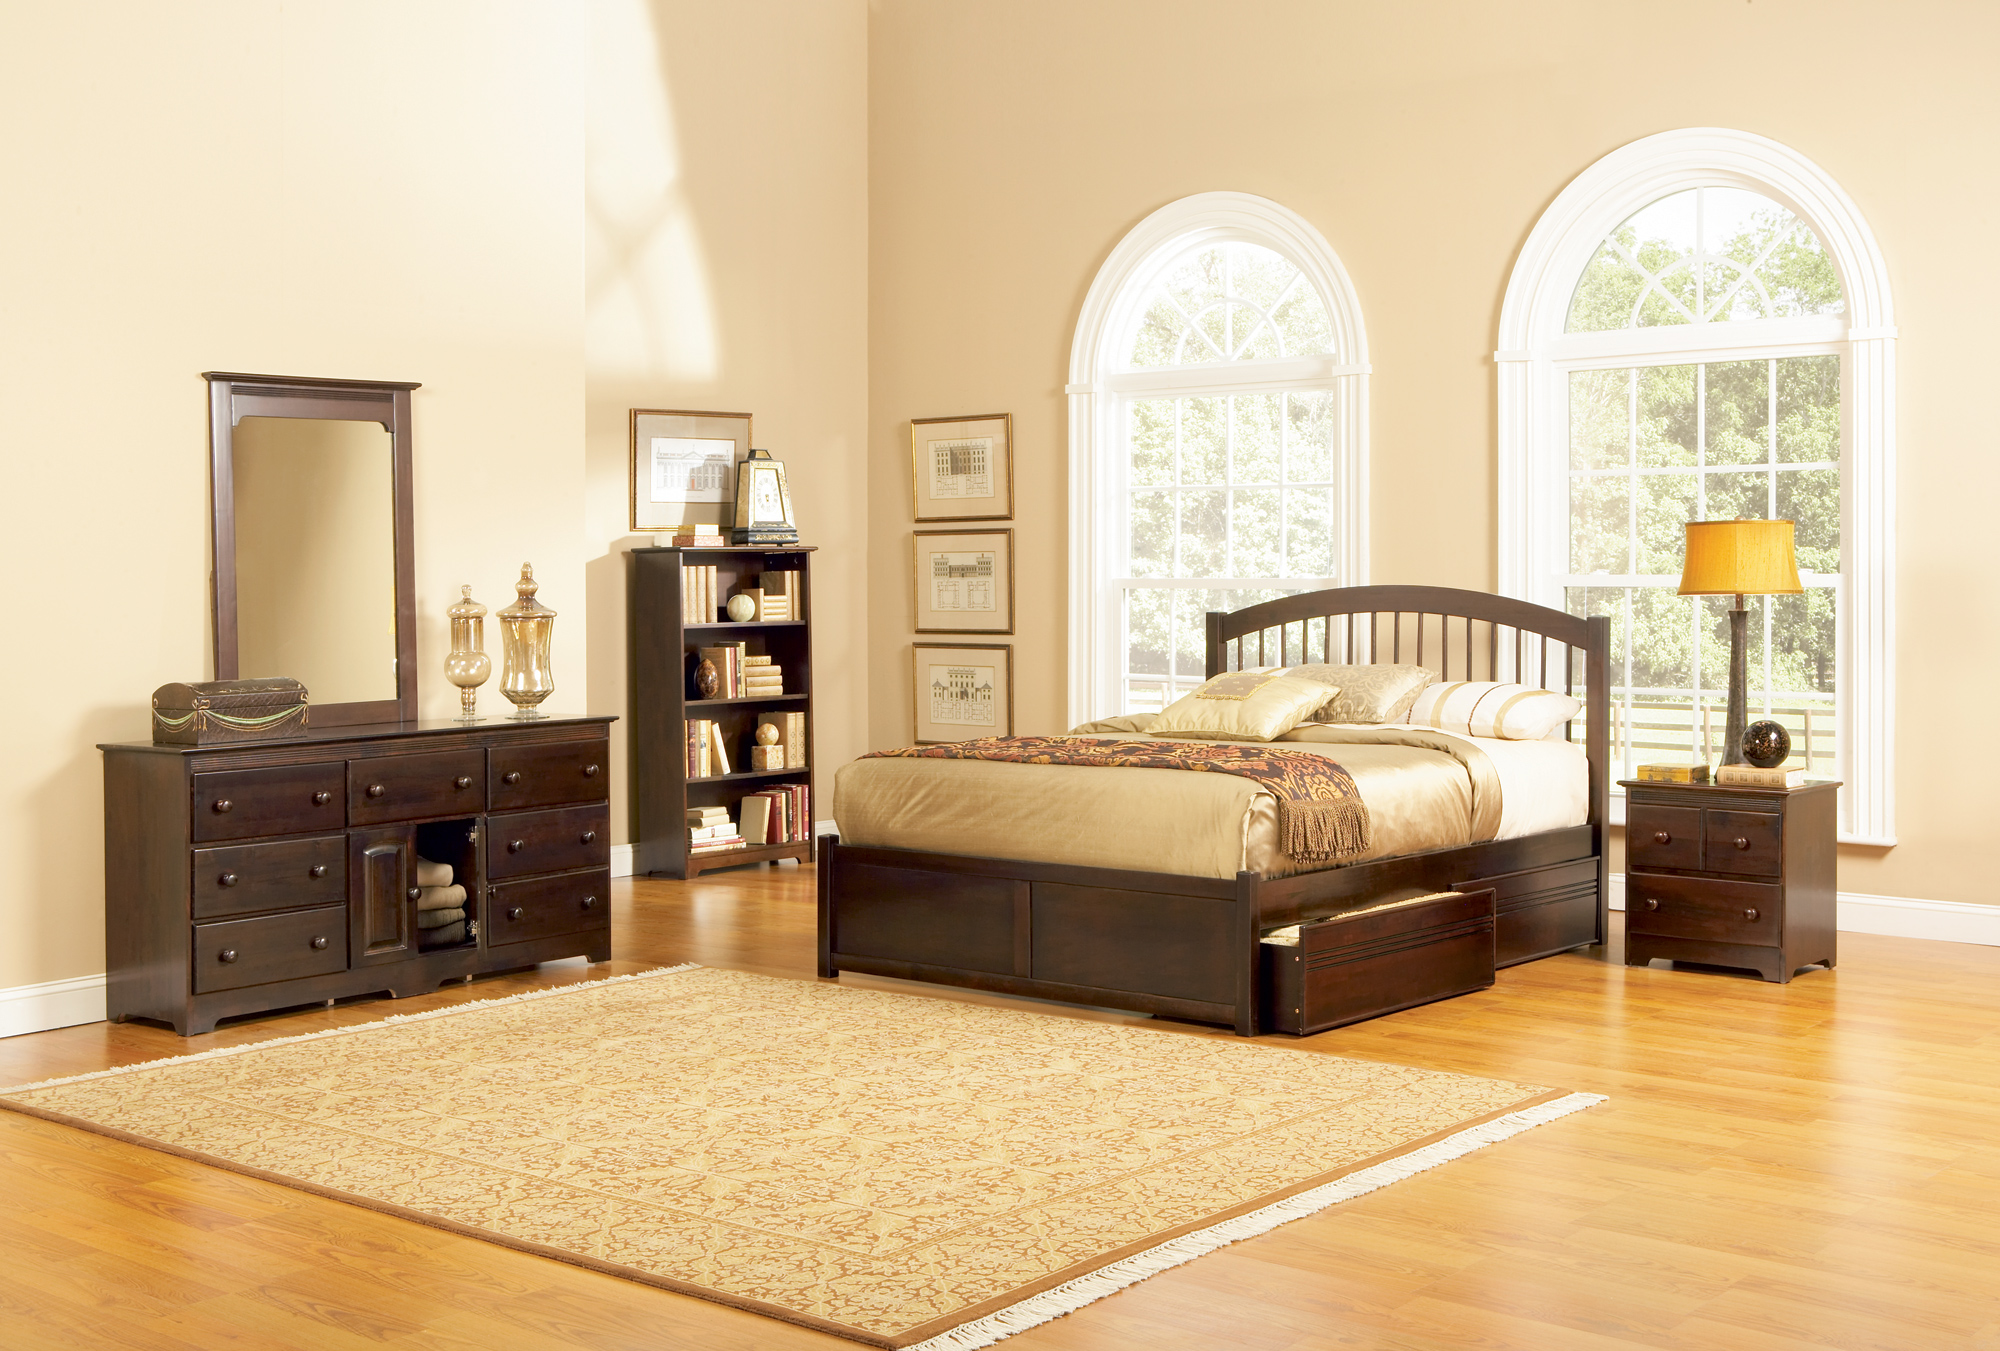 Home and Bedroom Back to School on Storage Beds Sale Allows